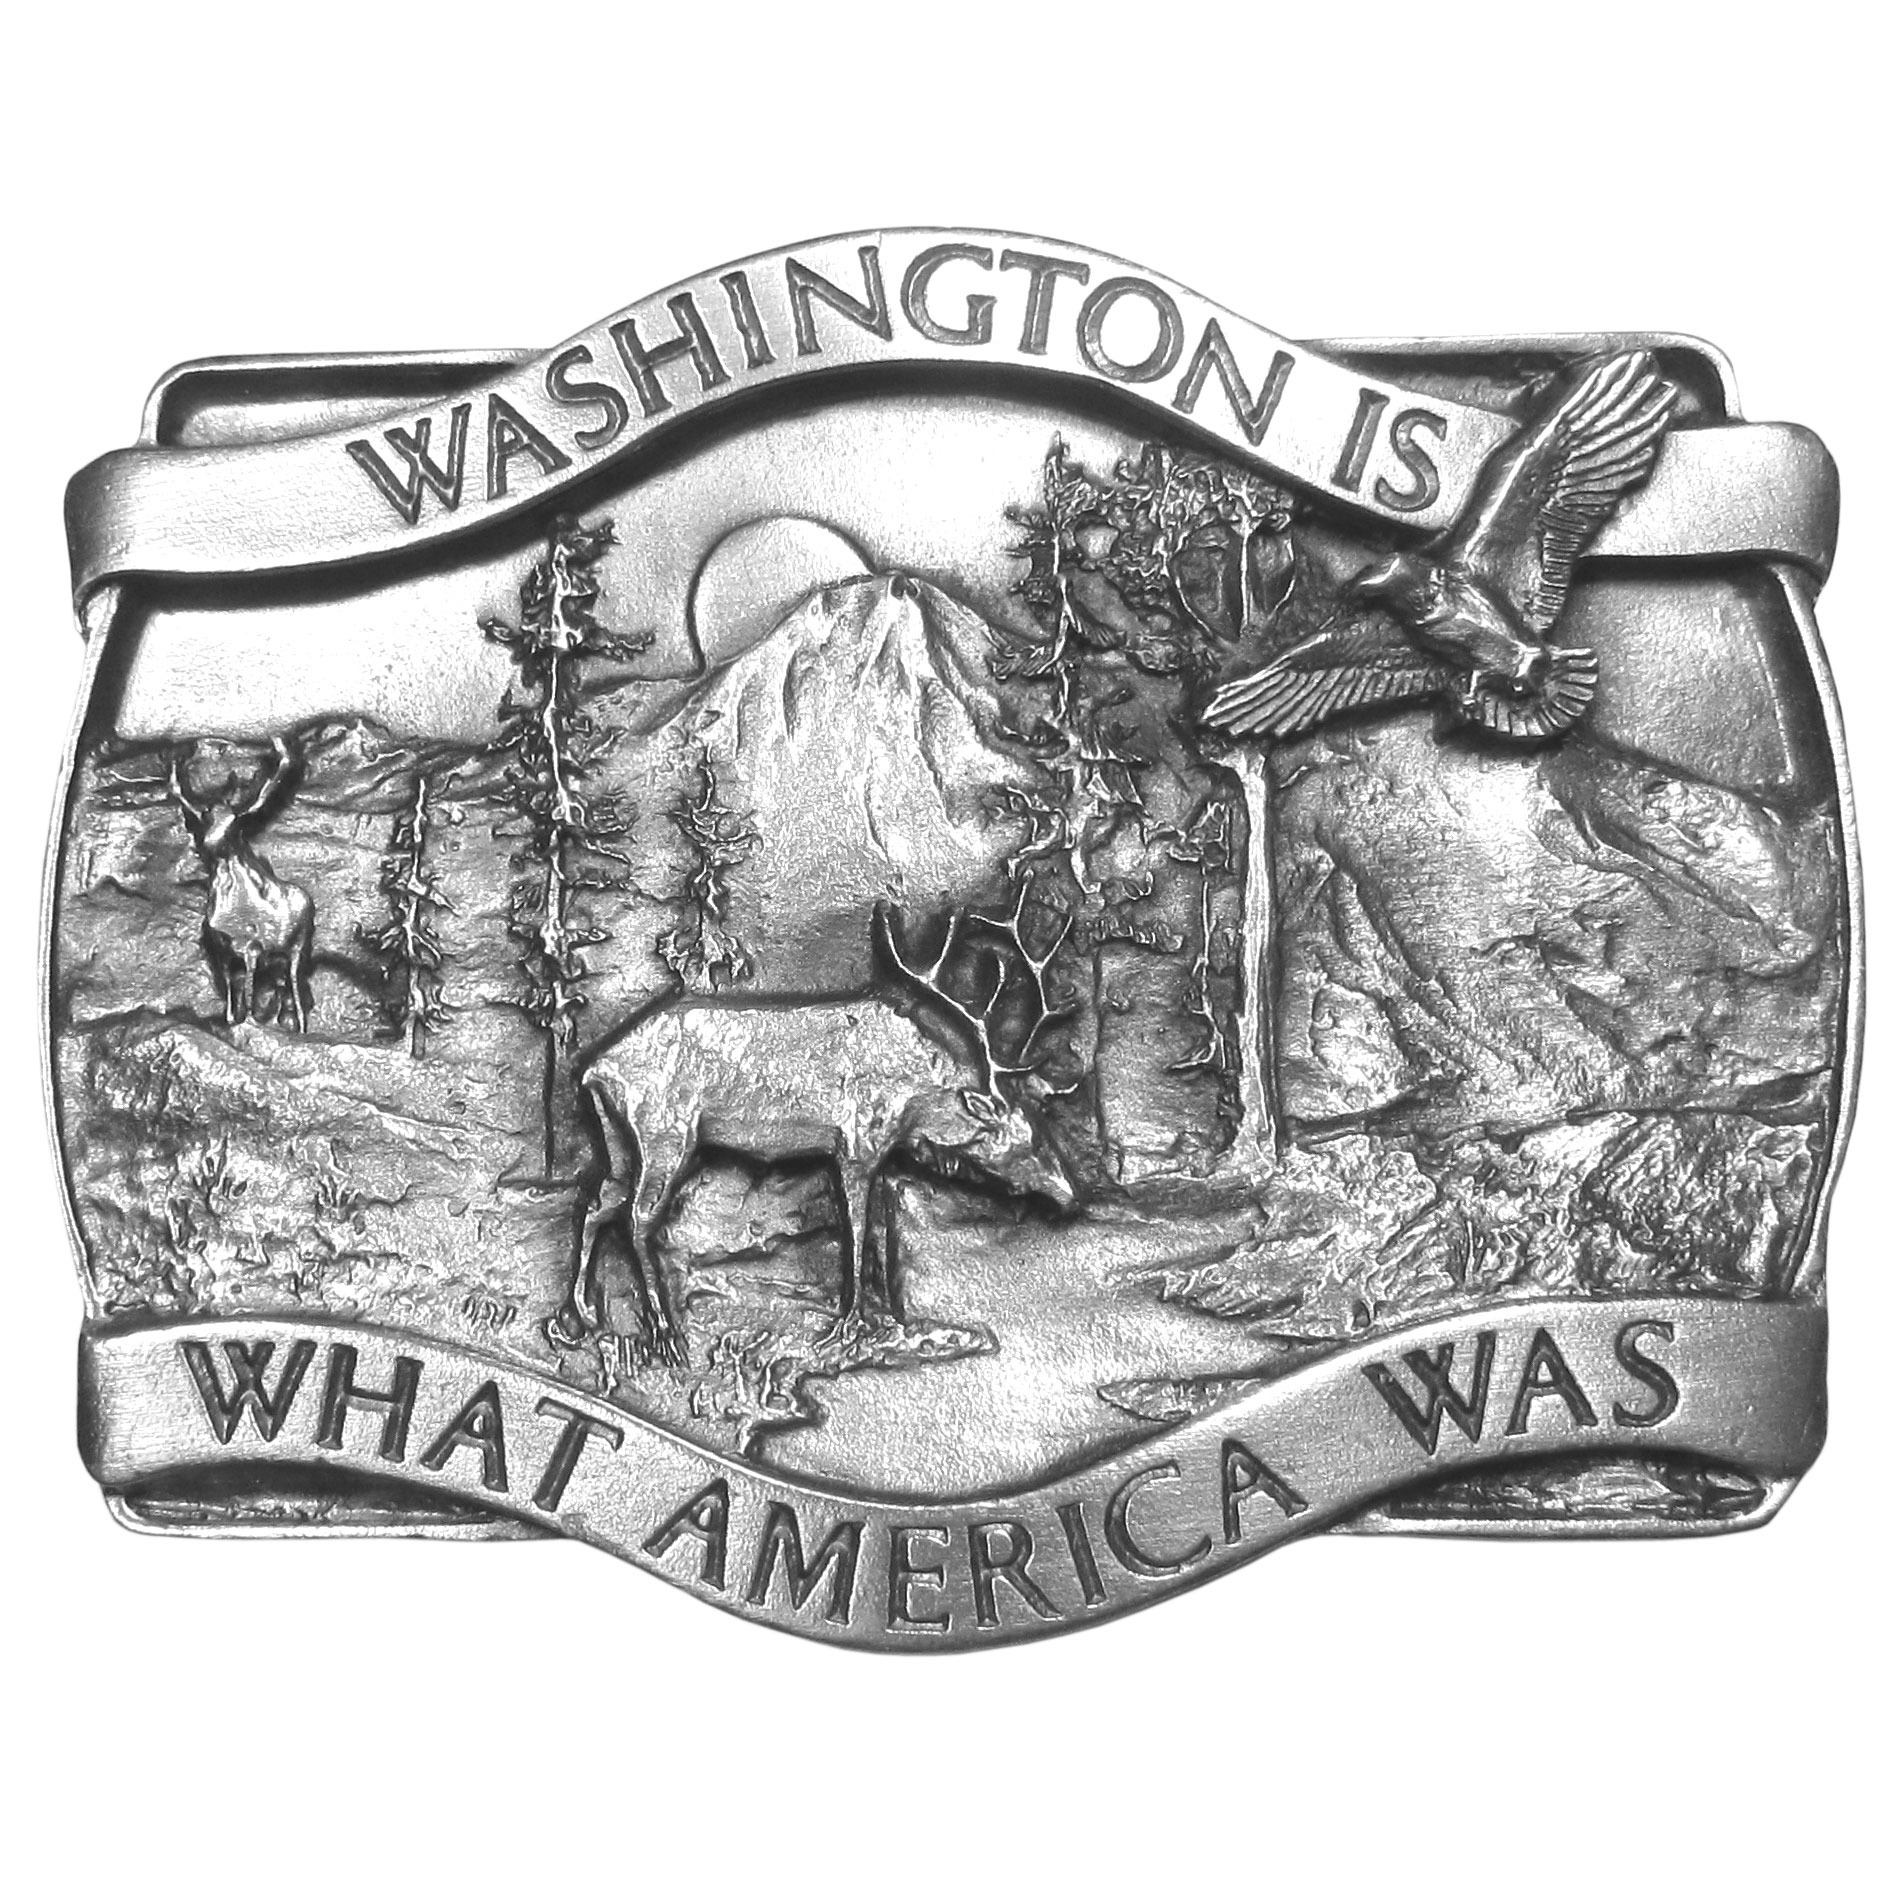 "Washington Antiqued Belt Buckle - ""Washington Is What America Was"" is proudly written on this buckle. Exquistely carved, this buckle has an elk and a deer, both with antlers, trees, river, sun, mountains and an eagle soaring through the sky. This buckle is made of fully cast metal with a standard bale that fits up to 2"""" belts. Siskiyou's unique buckle designs often become collectors items and are unequaled with the best craftsmanship."""